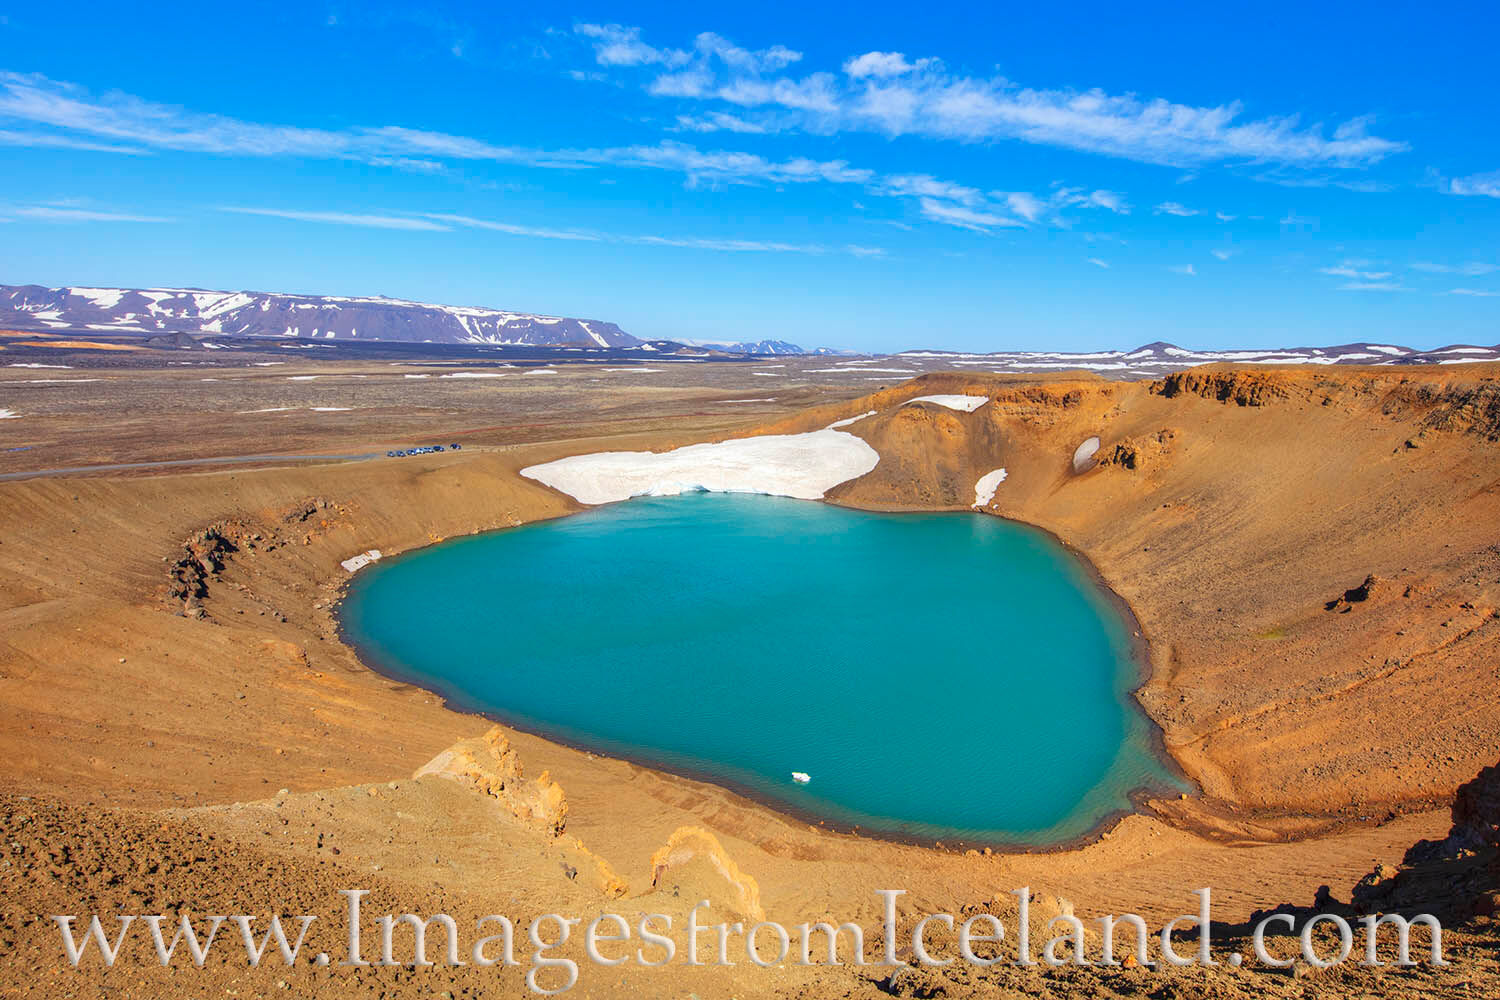 From high up on the rim of an old volcano, this view shows the amazing blue-green water of a lake at the bottom of the Stóra...